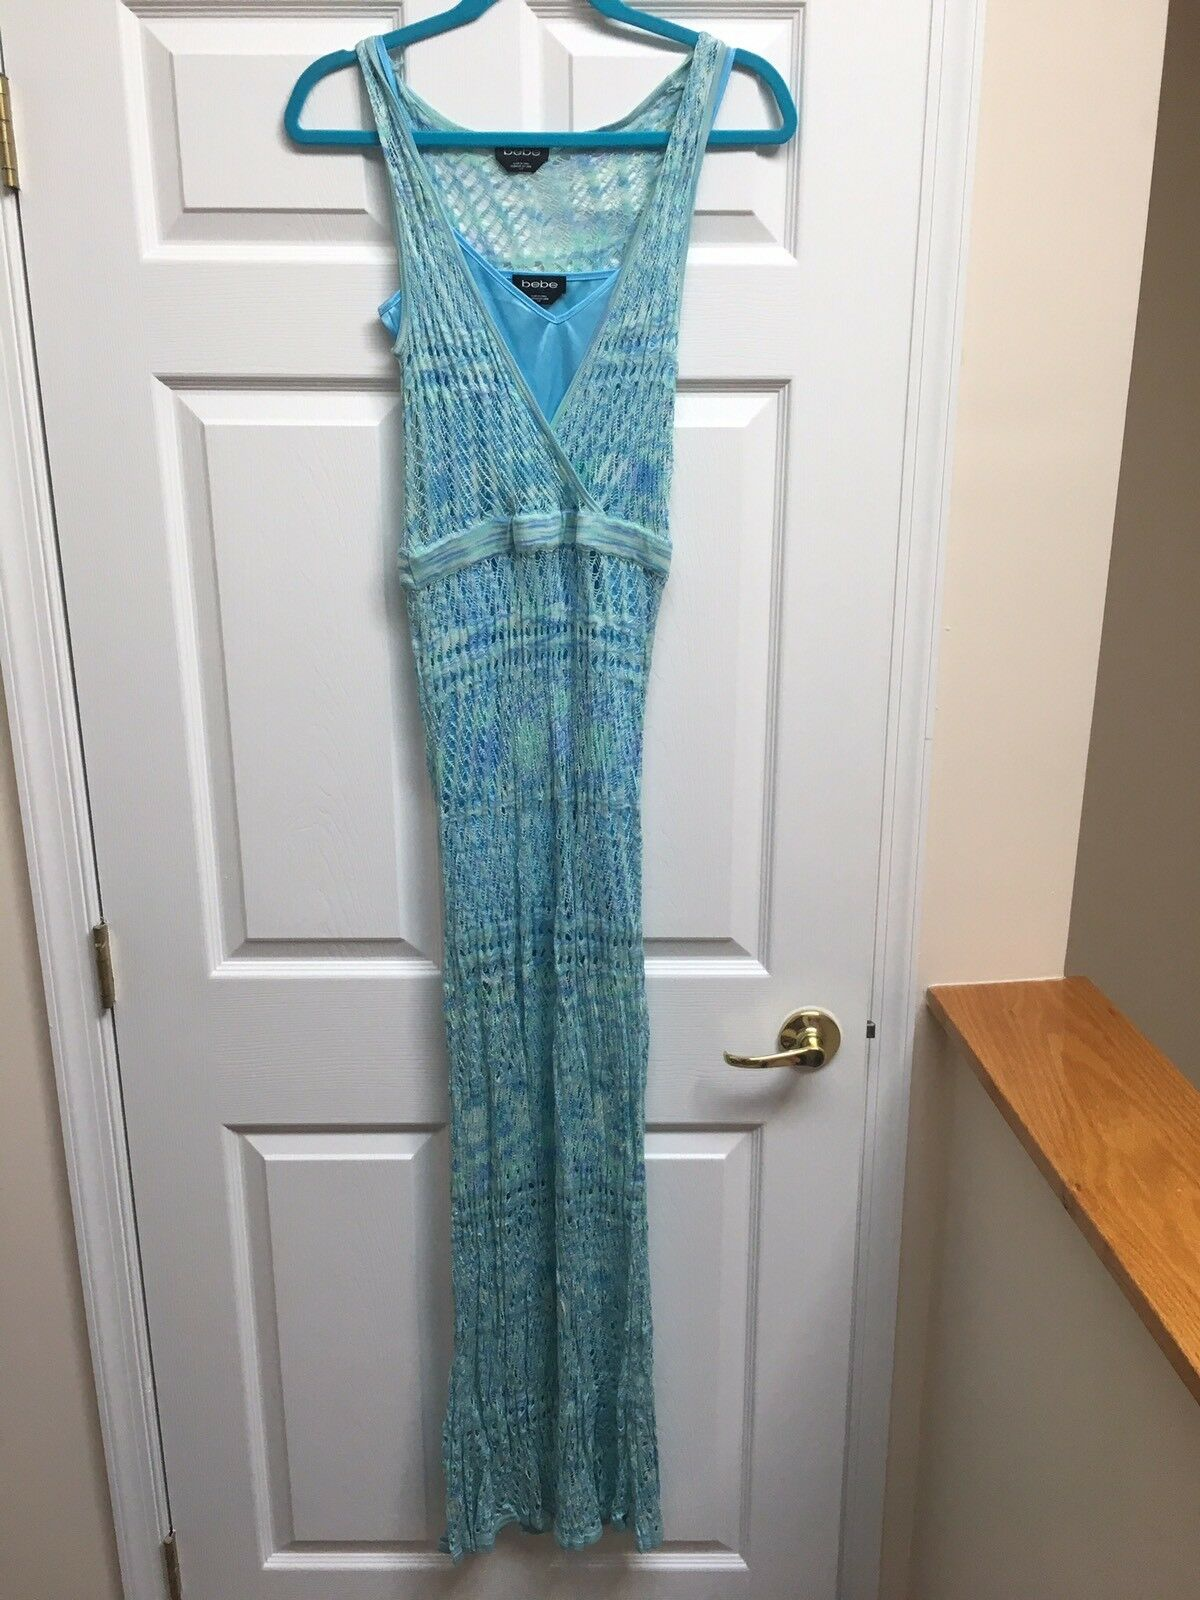 Bebe Women's Maxi Dress bluee Turquoise Pointelle Knit Space Dye Size Small S NWT